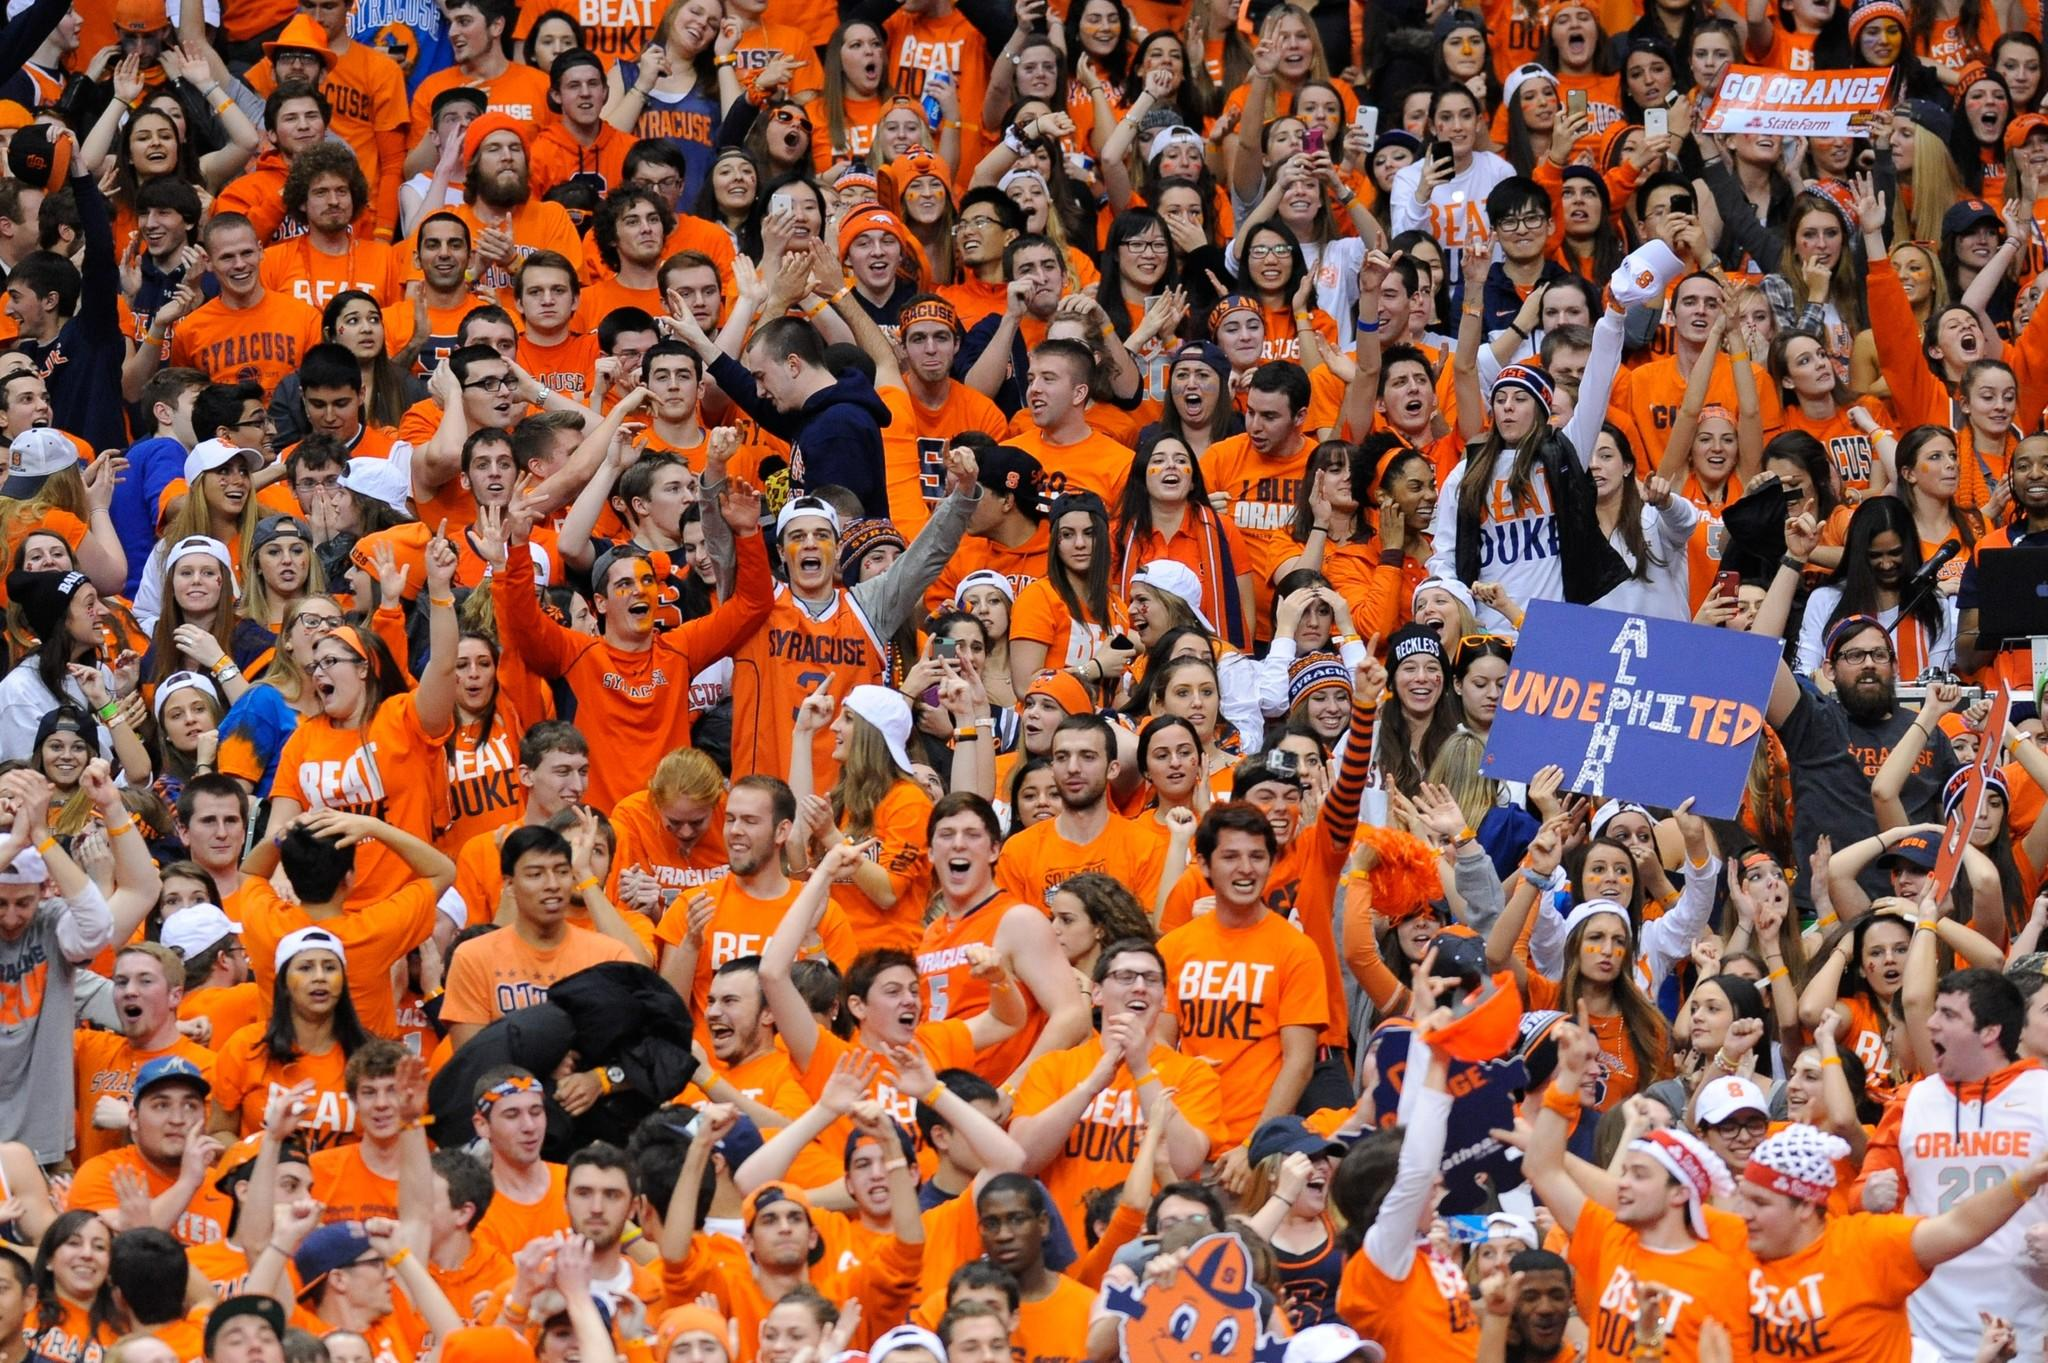 Syracuse fans cheer during Saturday's OT win over Duke.